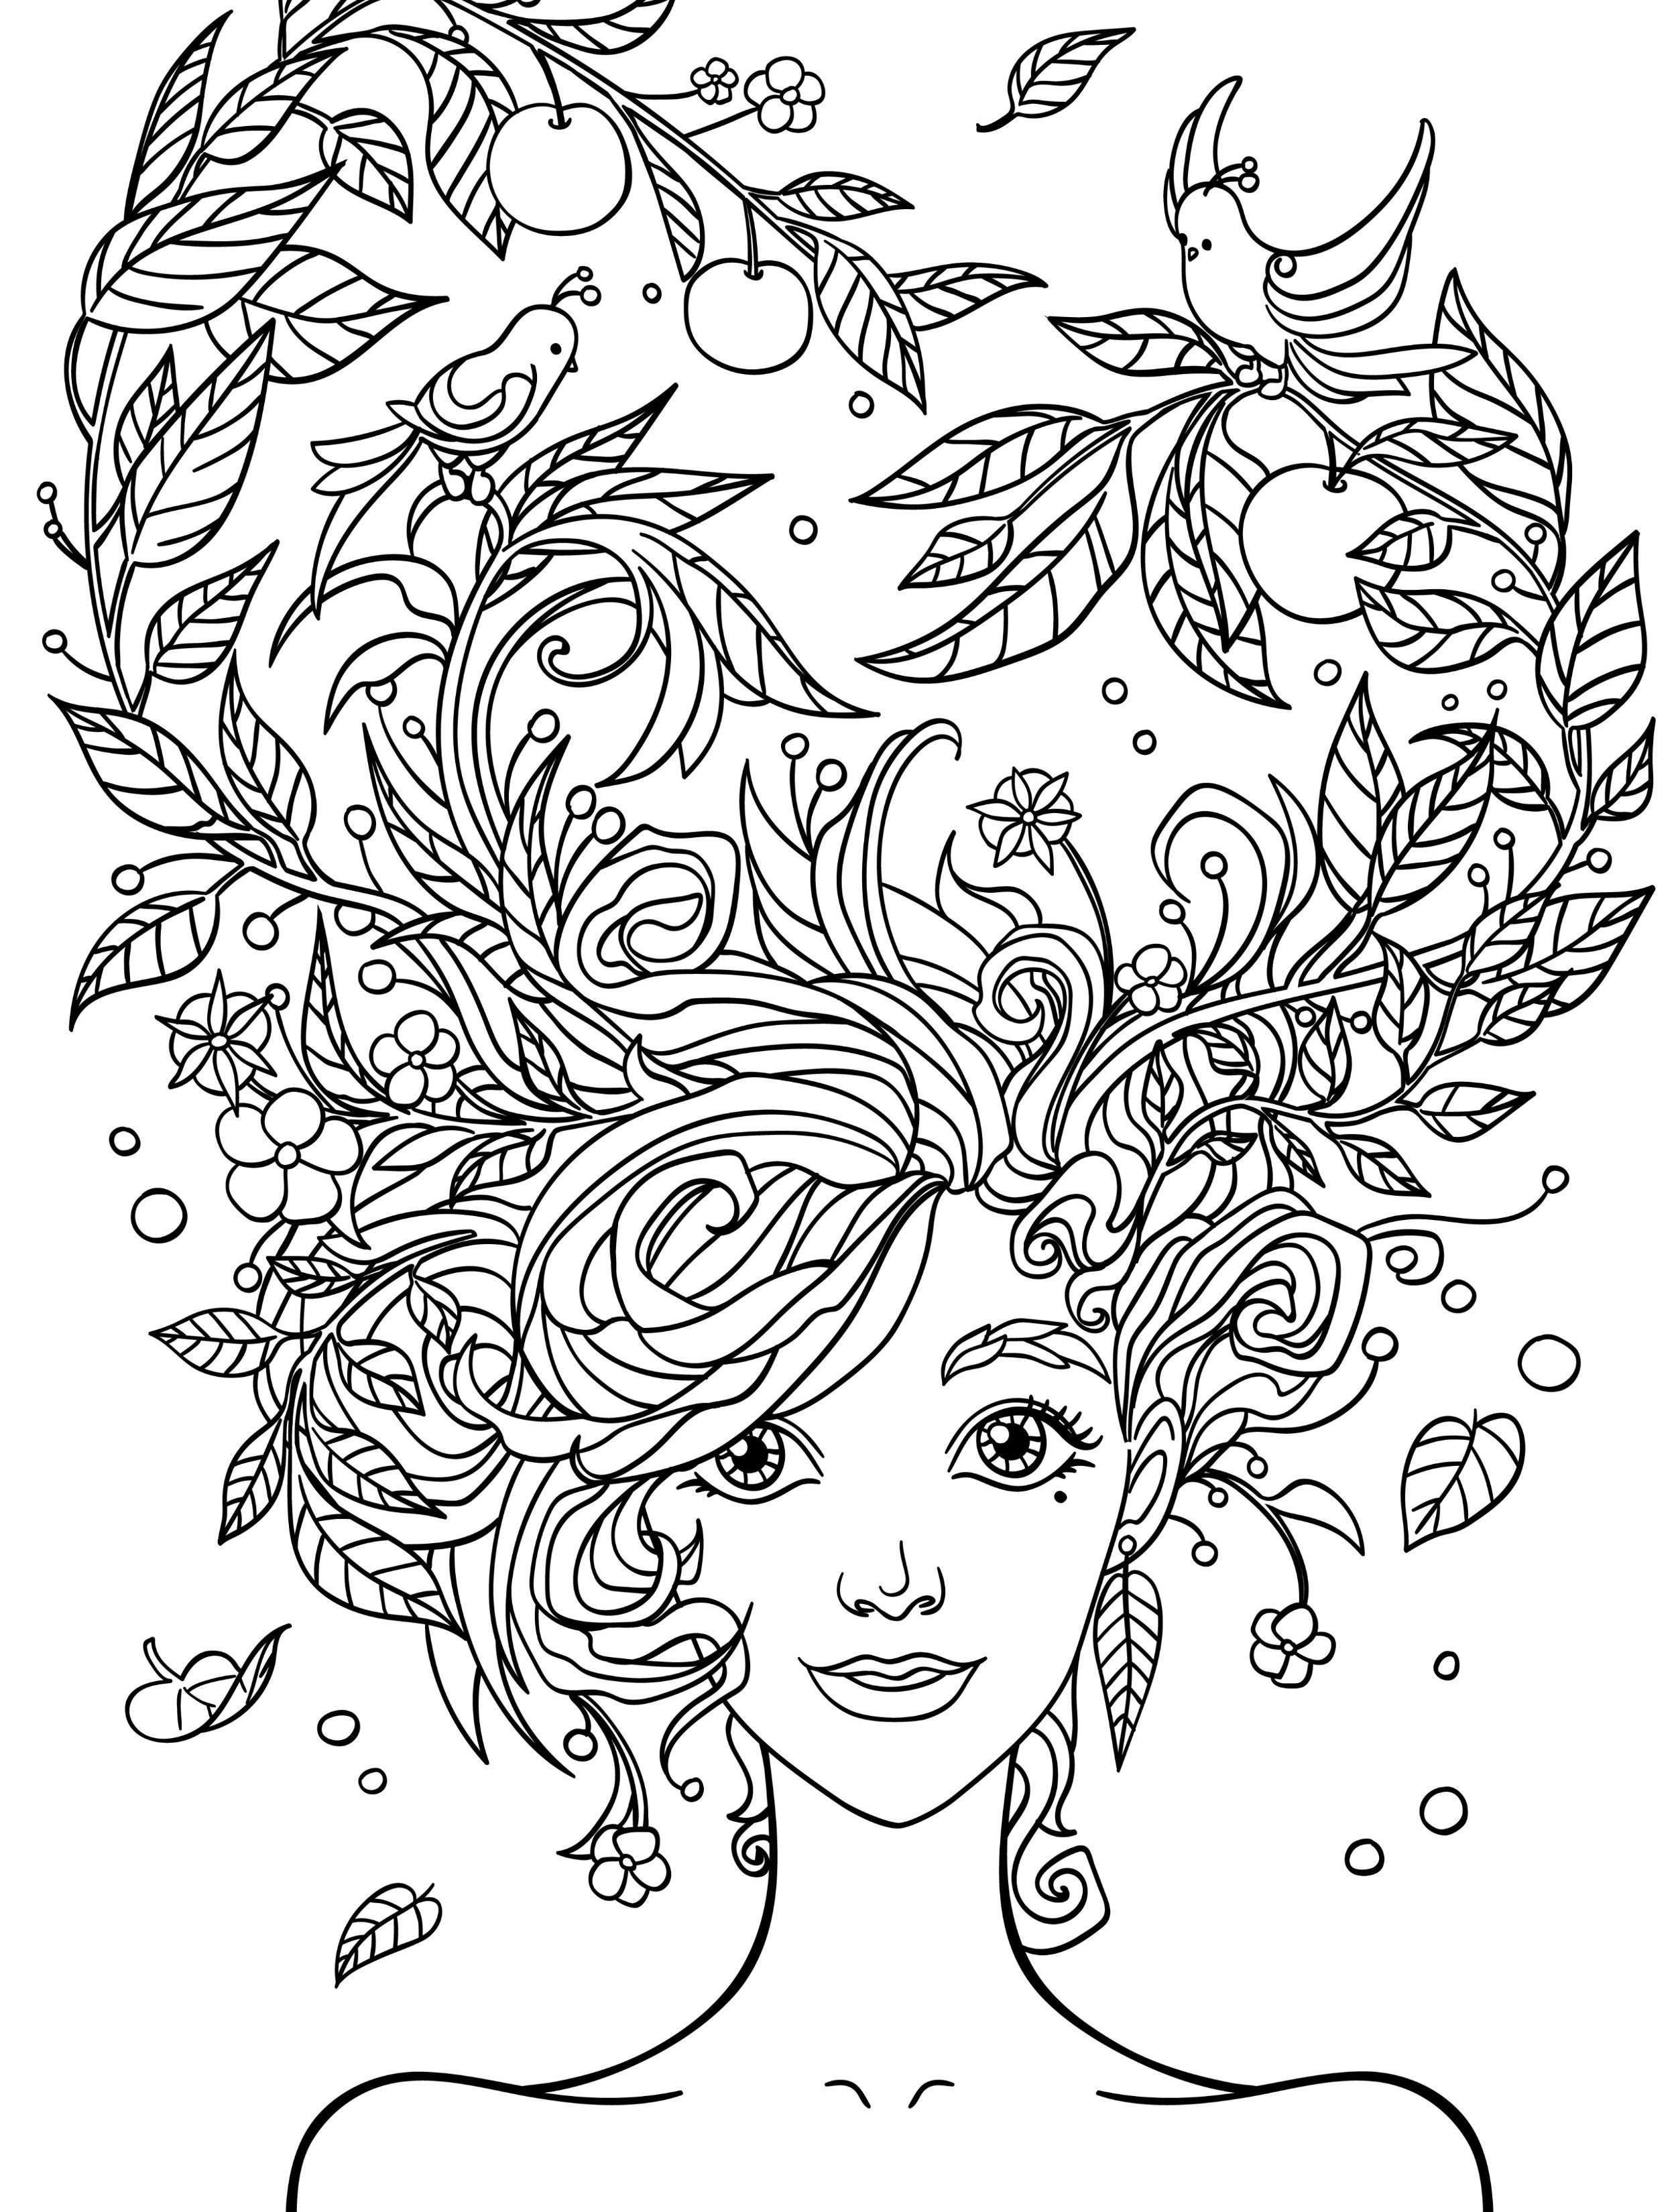 adult coloring pages people pretty coloring pages for adults free printable | people coloring  adult coloring pages people